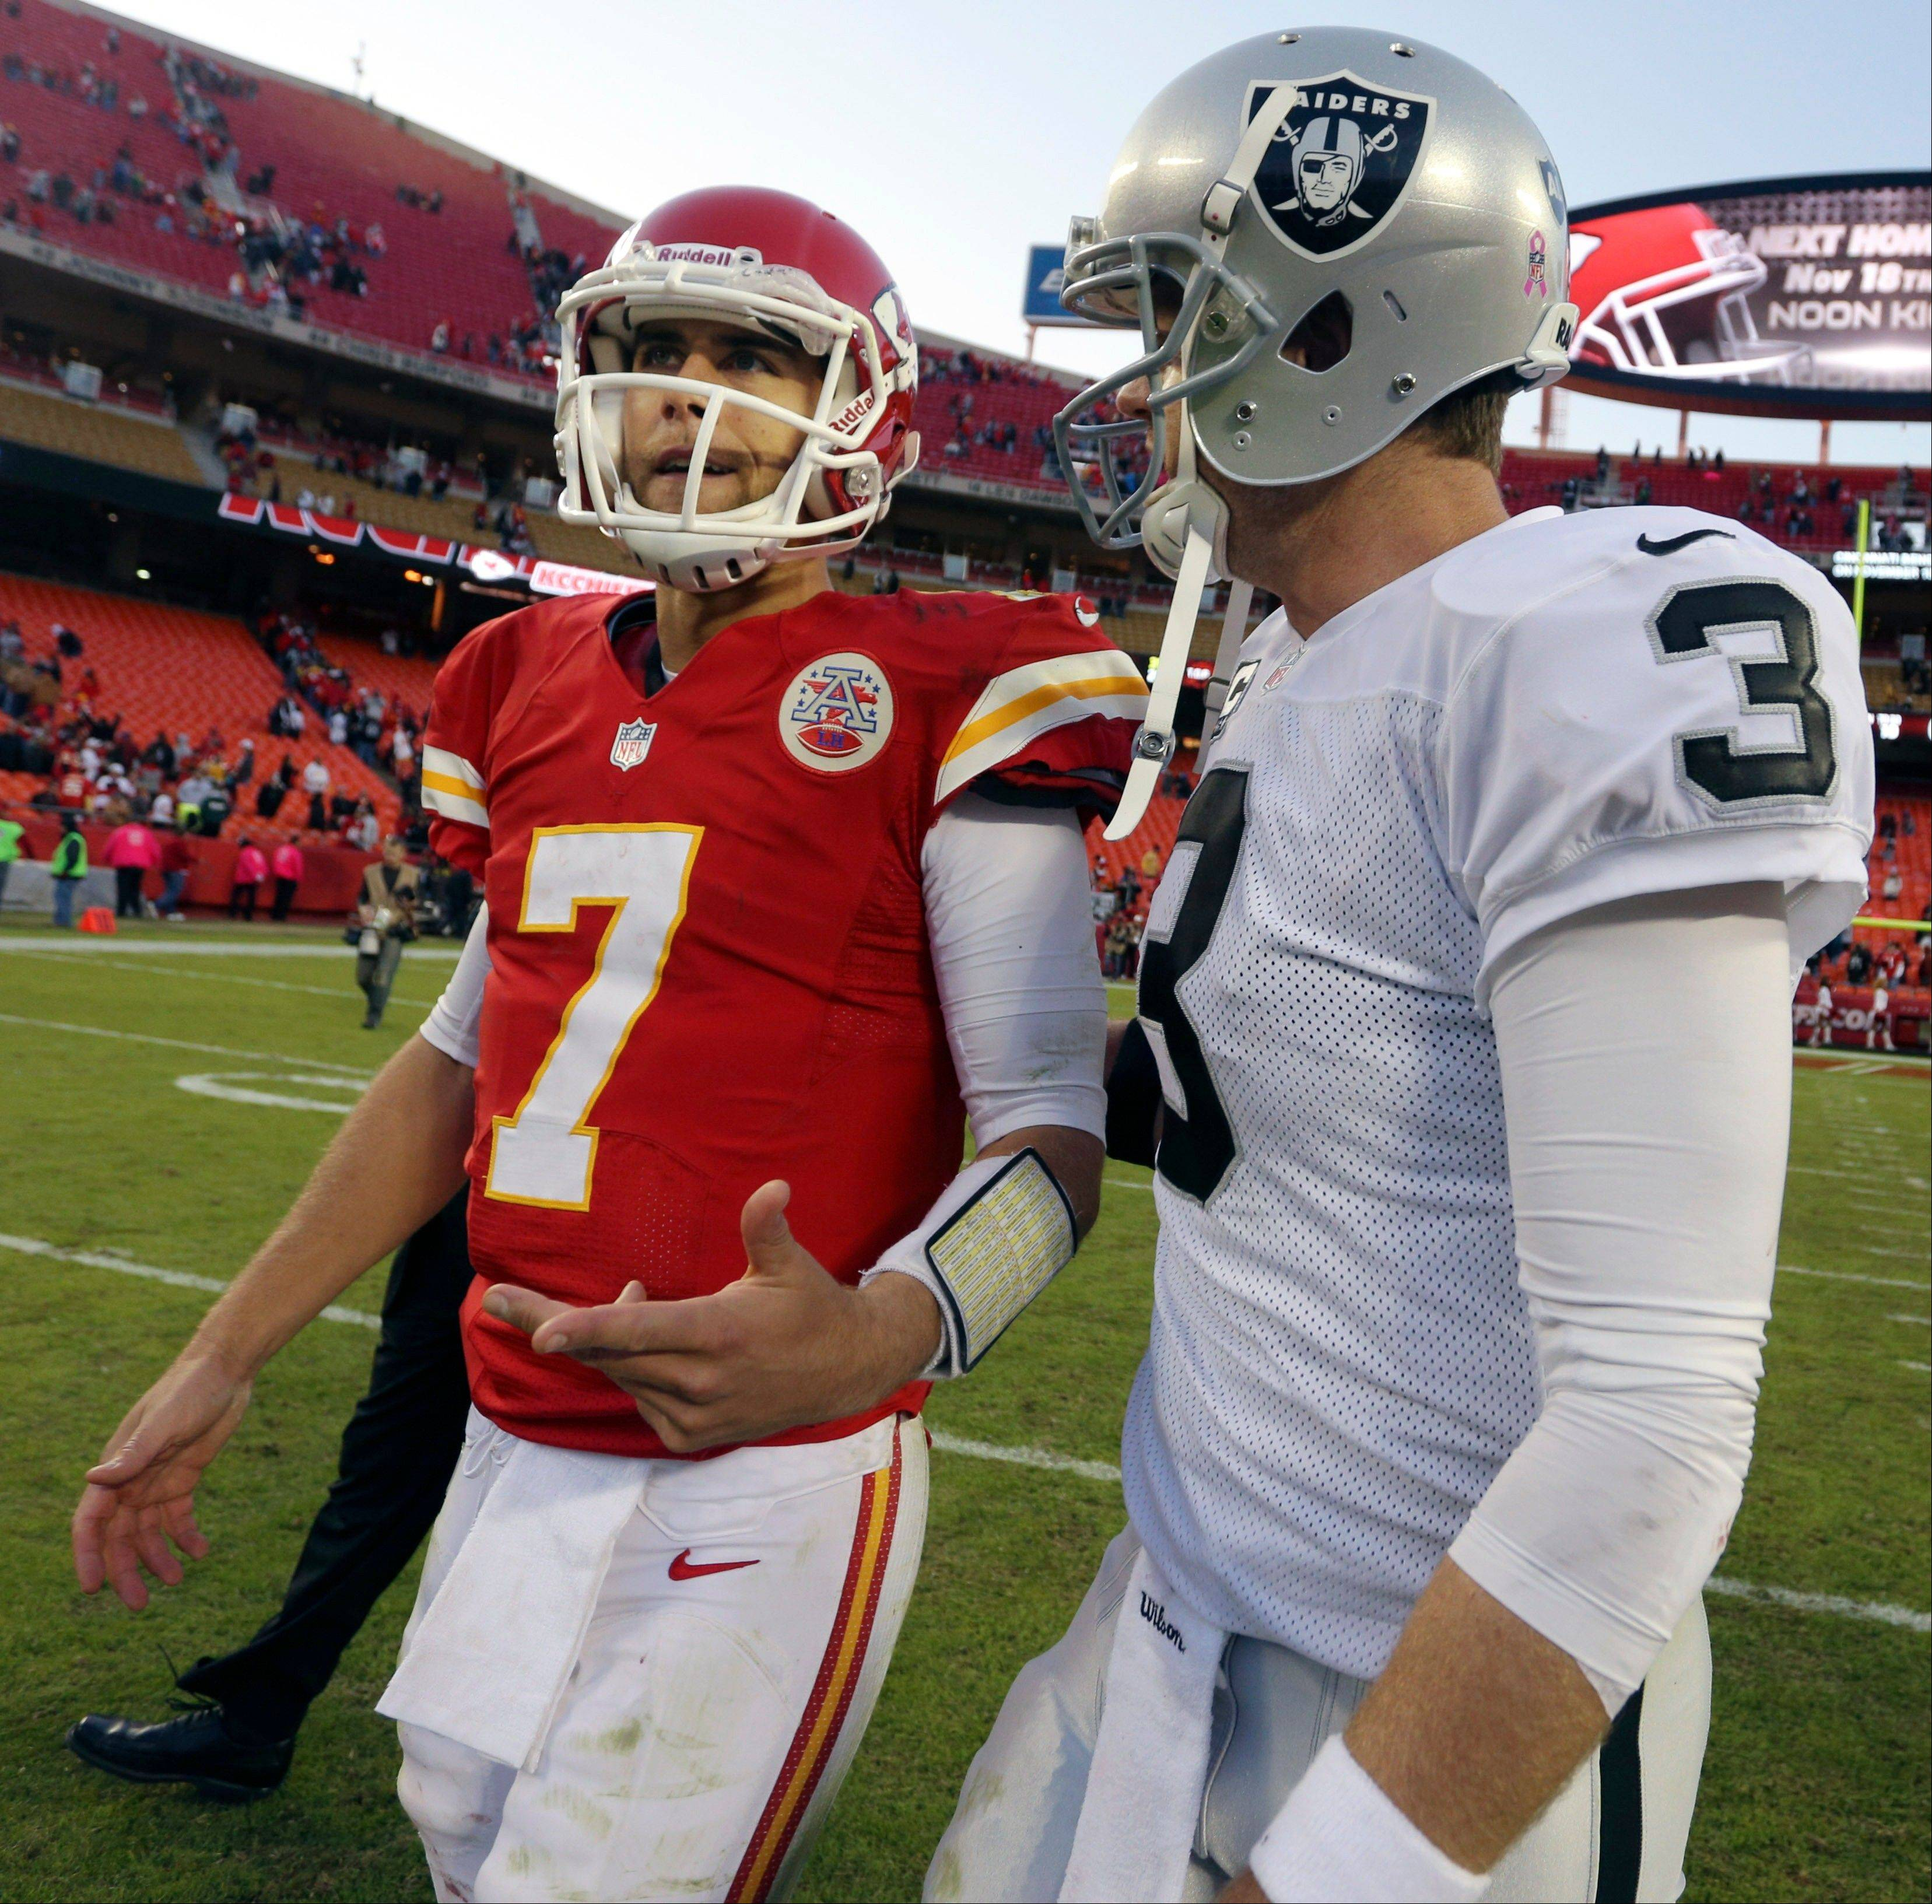 Kansas City Chiefs quarterback Matt Cassel (7) and Oakland Raiders quarterback Carson Palmer (3) talk following an NFL football game at Arrowhead Stadium in Kansas City, Mo., Sunday. The Raiders defeated the Chiefs 26-16.